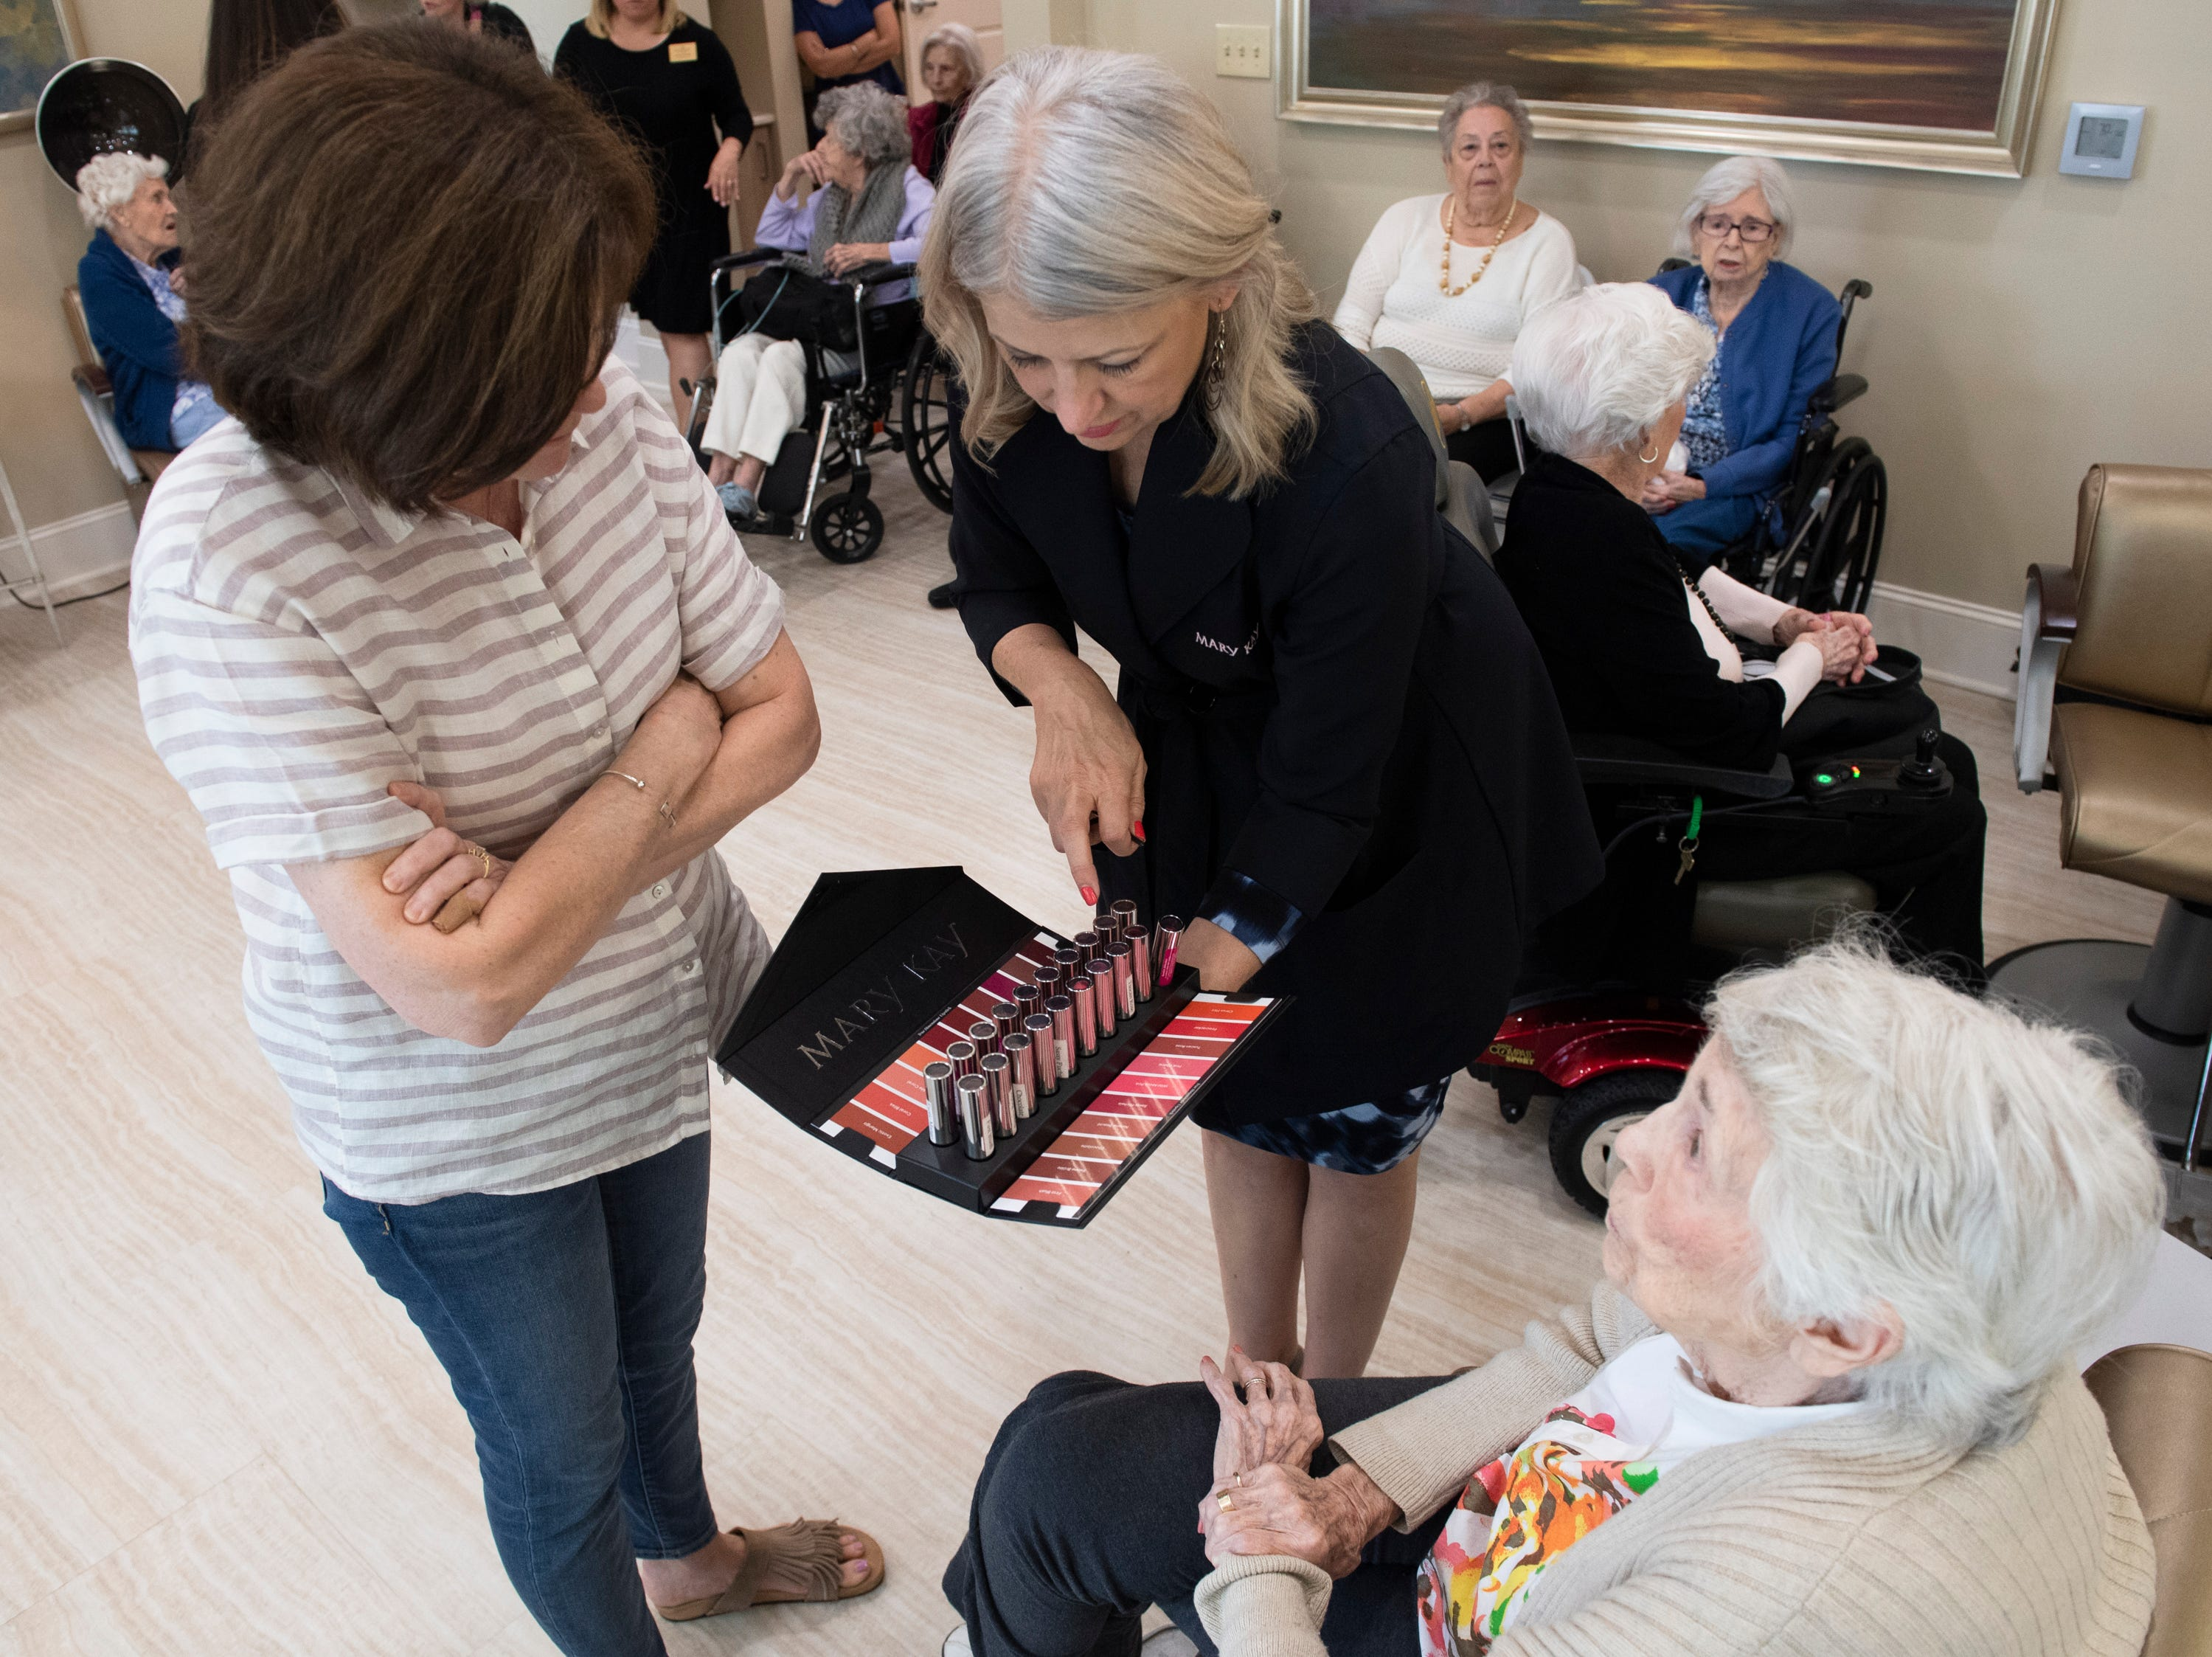 Sandra Johnston (center), from Mary Kay, helps Mary Jane Clayton and her mother, Dottie Sorensen, choose a lipstick color for Sorensen at Waterstone on Augusta Thursday, May 9, 2019. SYNERGY HomeCare of Greenville held a Mother's Day makeover party at the assisted living community.